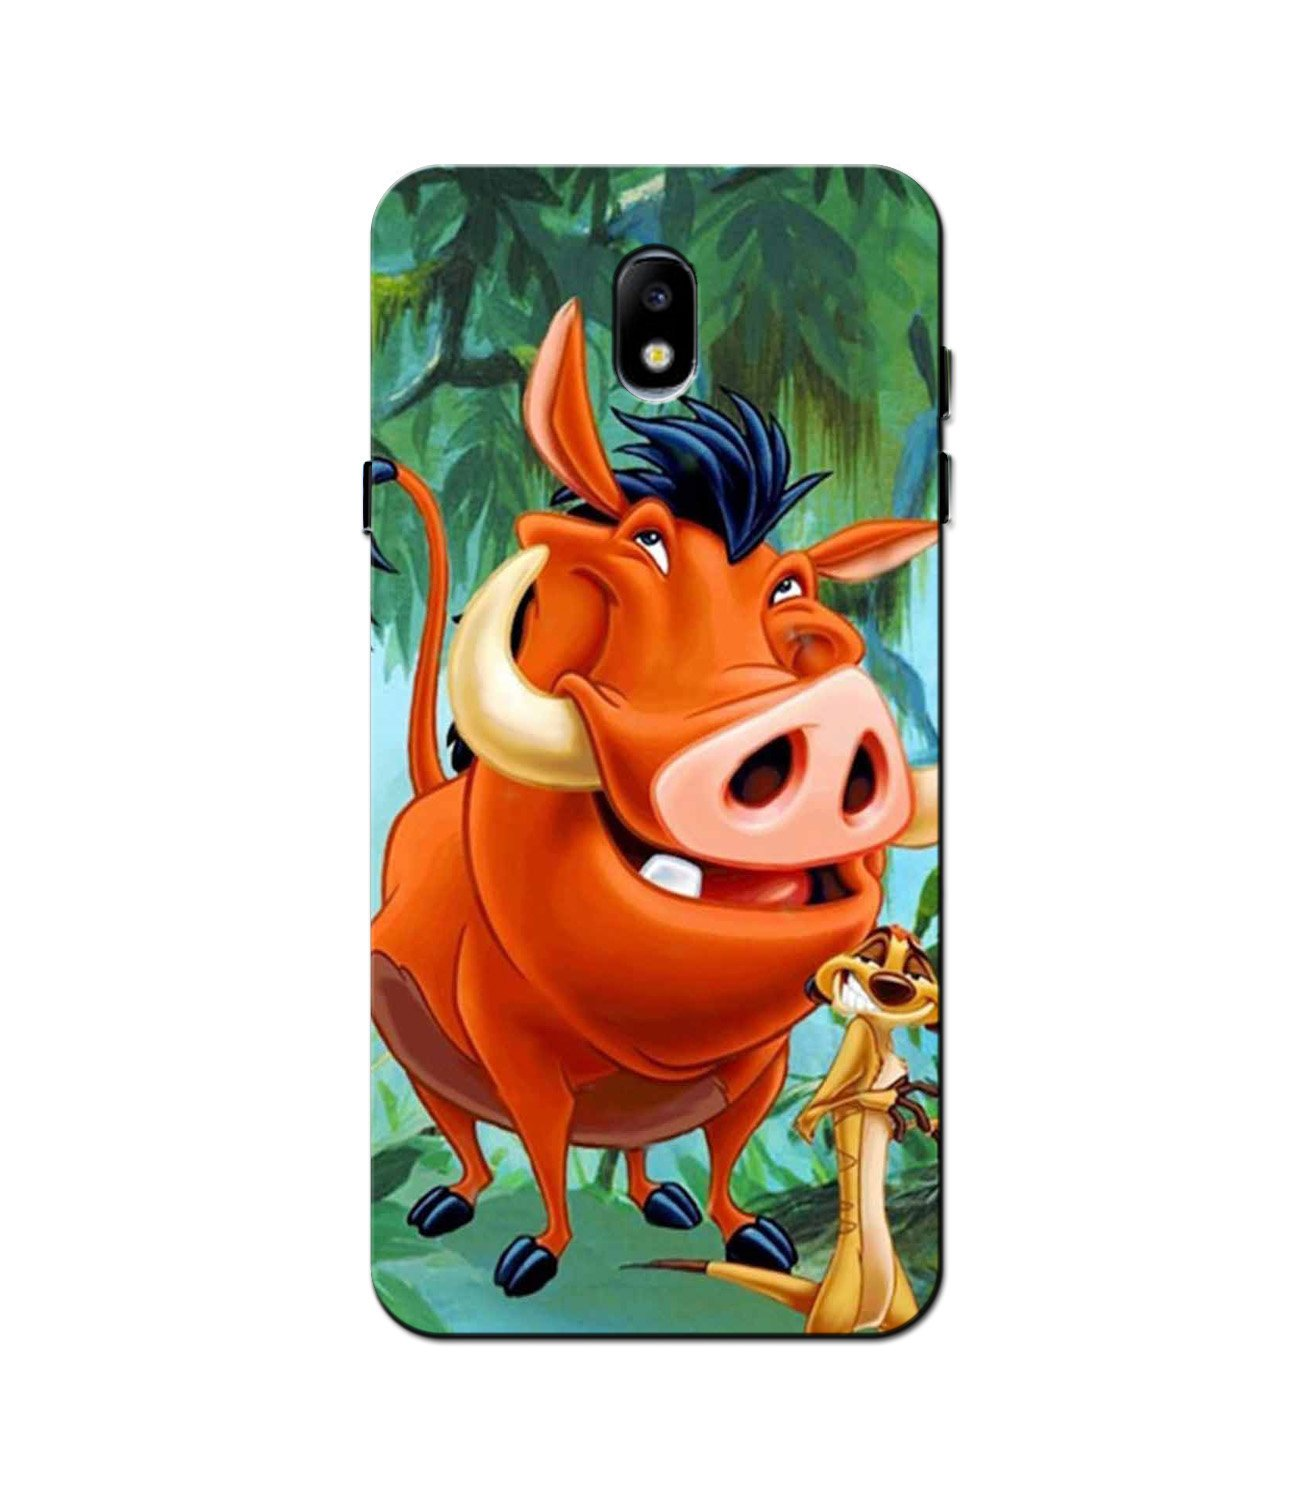 Timon and Pumbaa Mobile Back Case for Galaxy J3 Pro  (Design - 305)